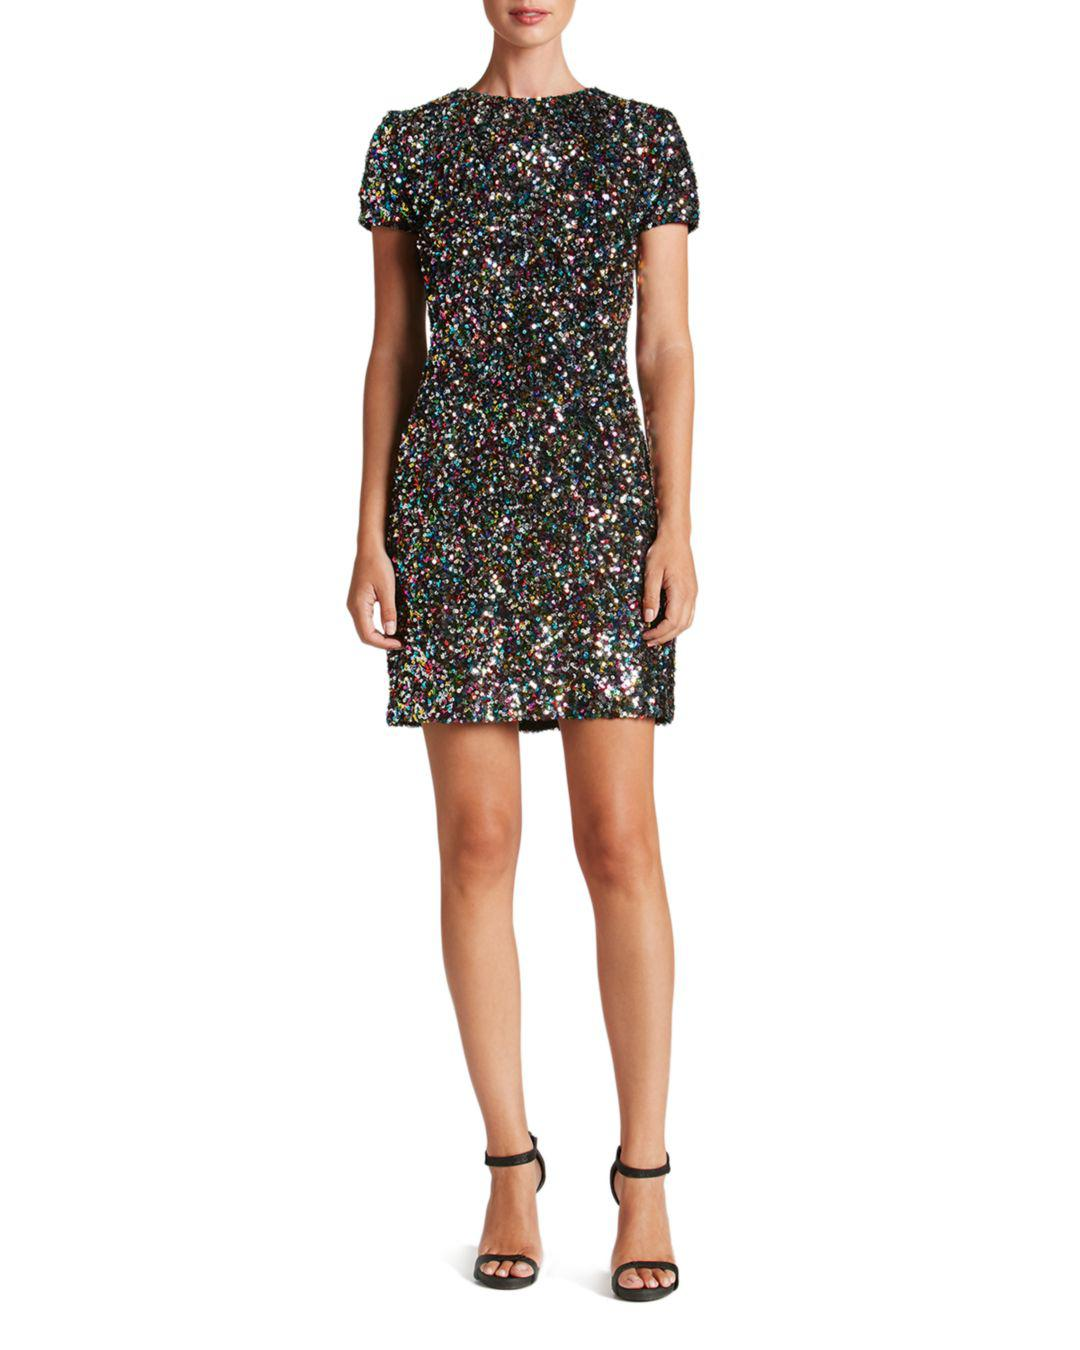 bc4f885a Gallery. Previously sold at: Bloomingdale's · Women's Black Dresses Women's  Sequin Dresses